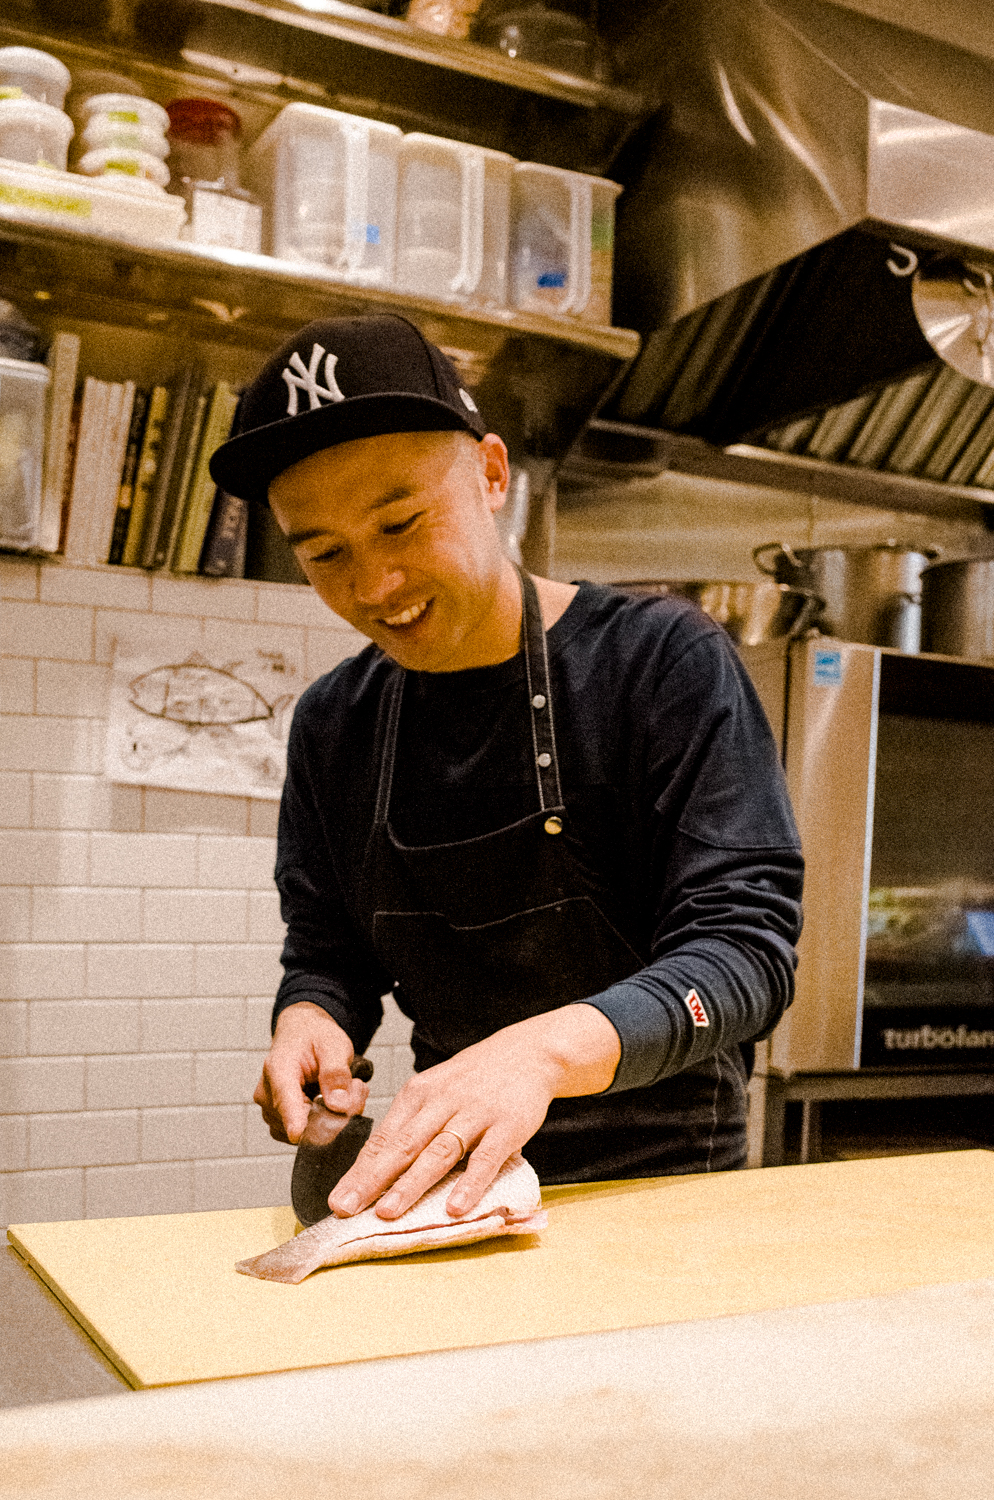 Yuji Haraguchi - Chef / Entrepreneur / Yankees Fan